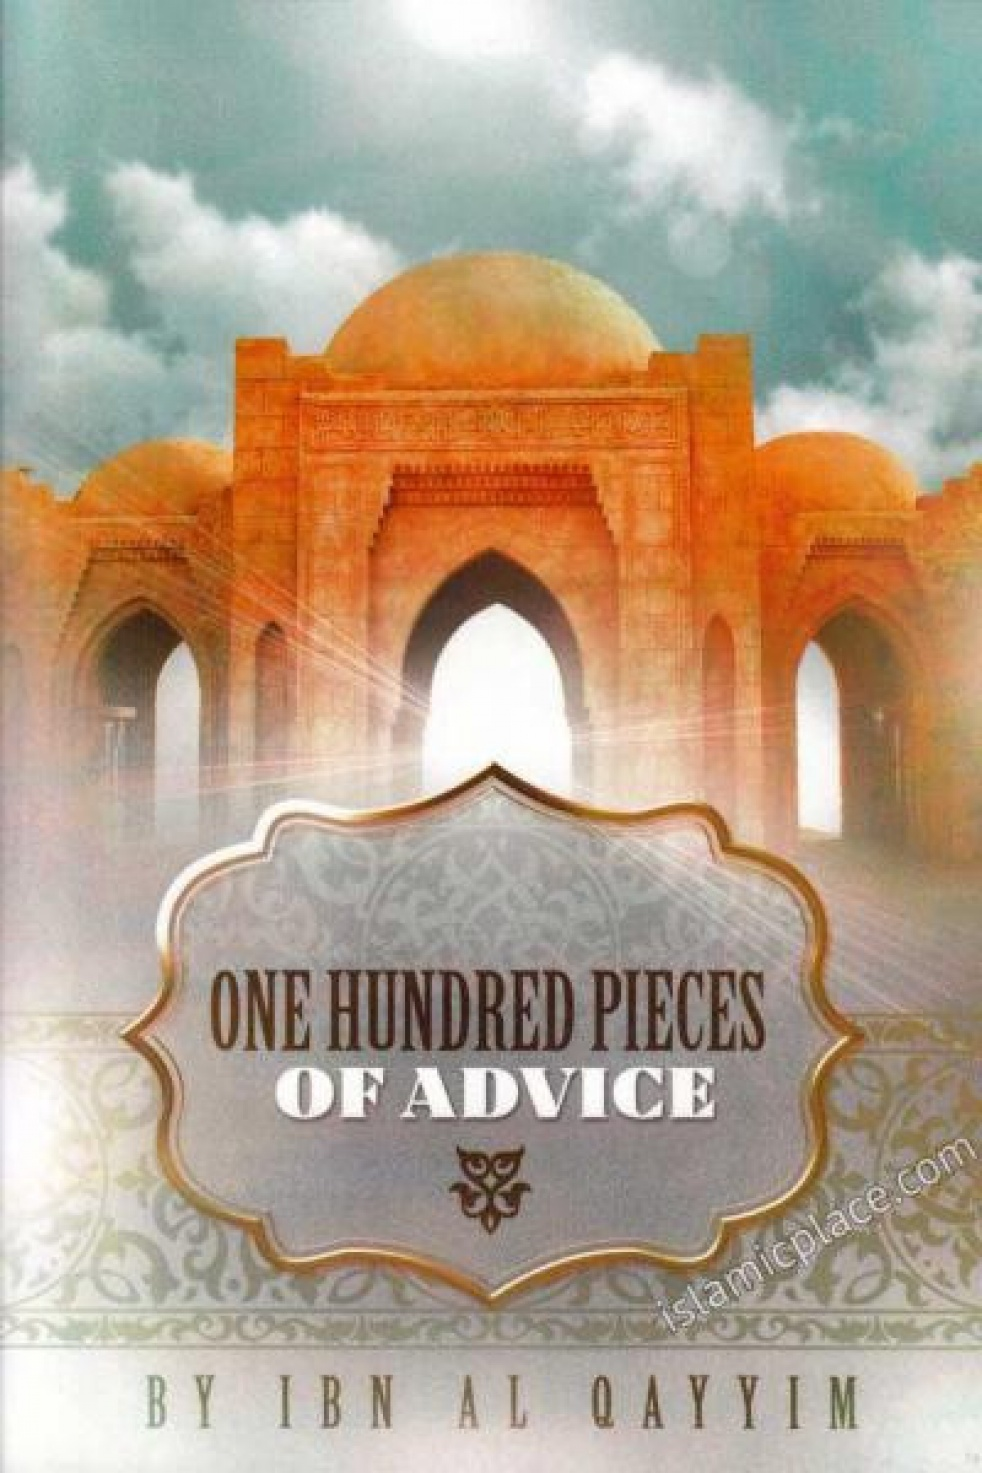 100 Advices by Imam Ibnul-Qayyim - show cover